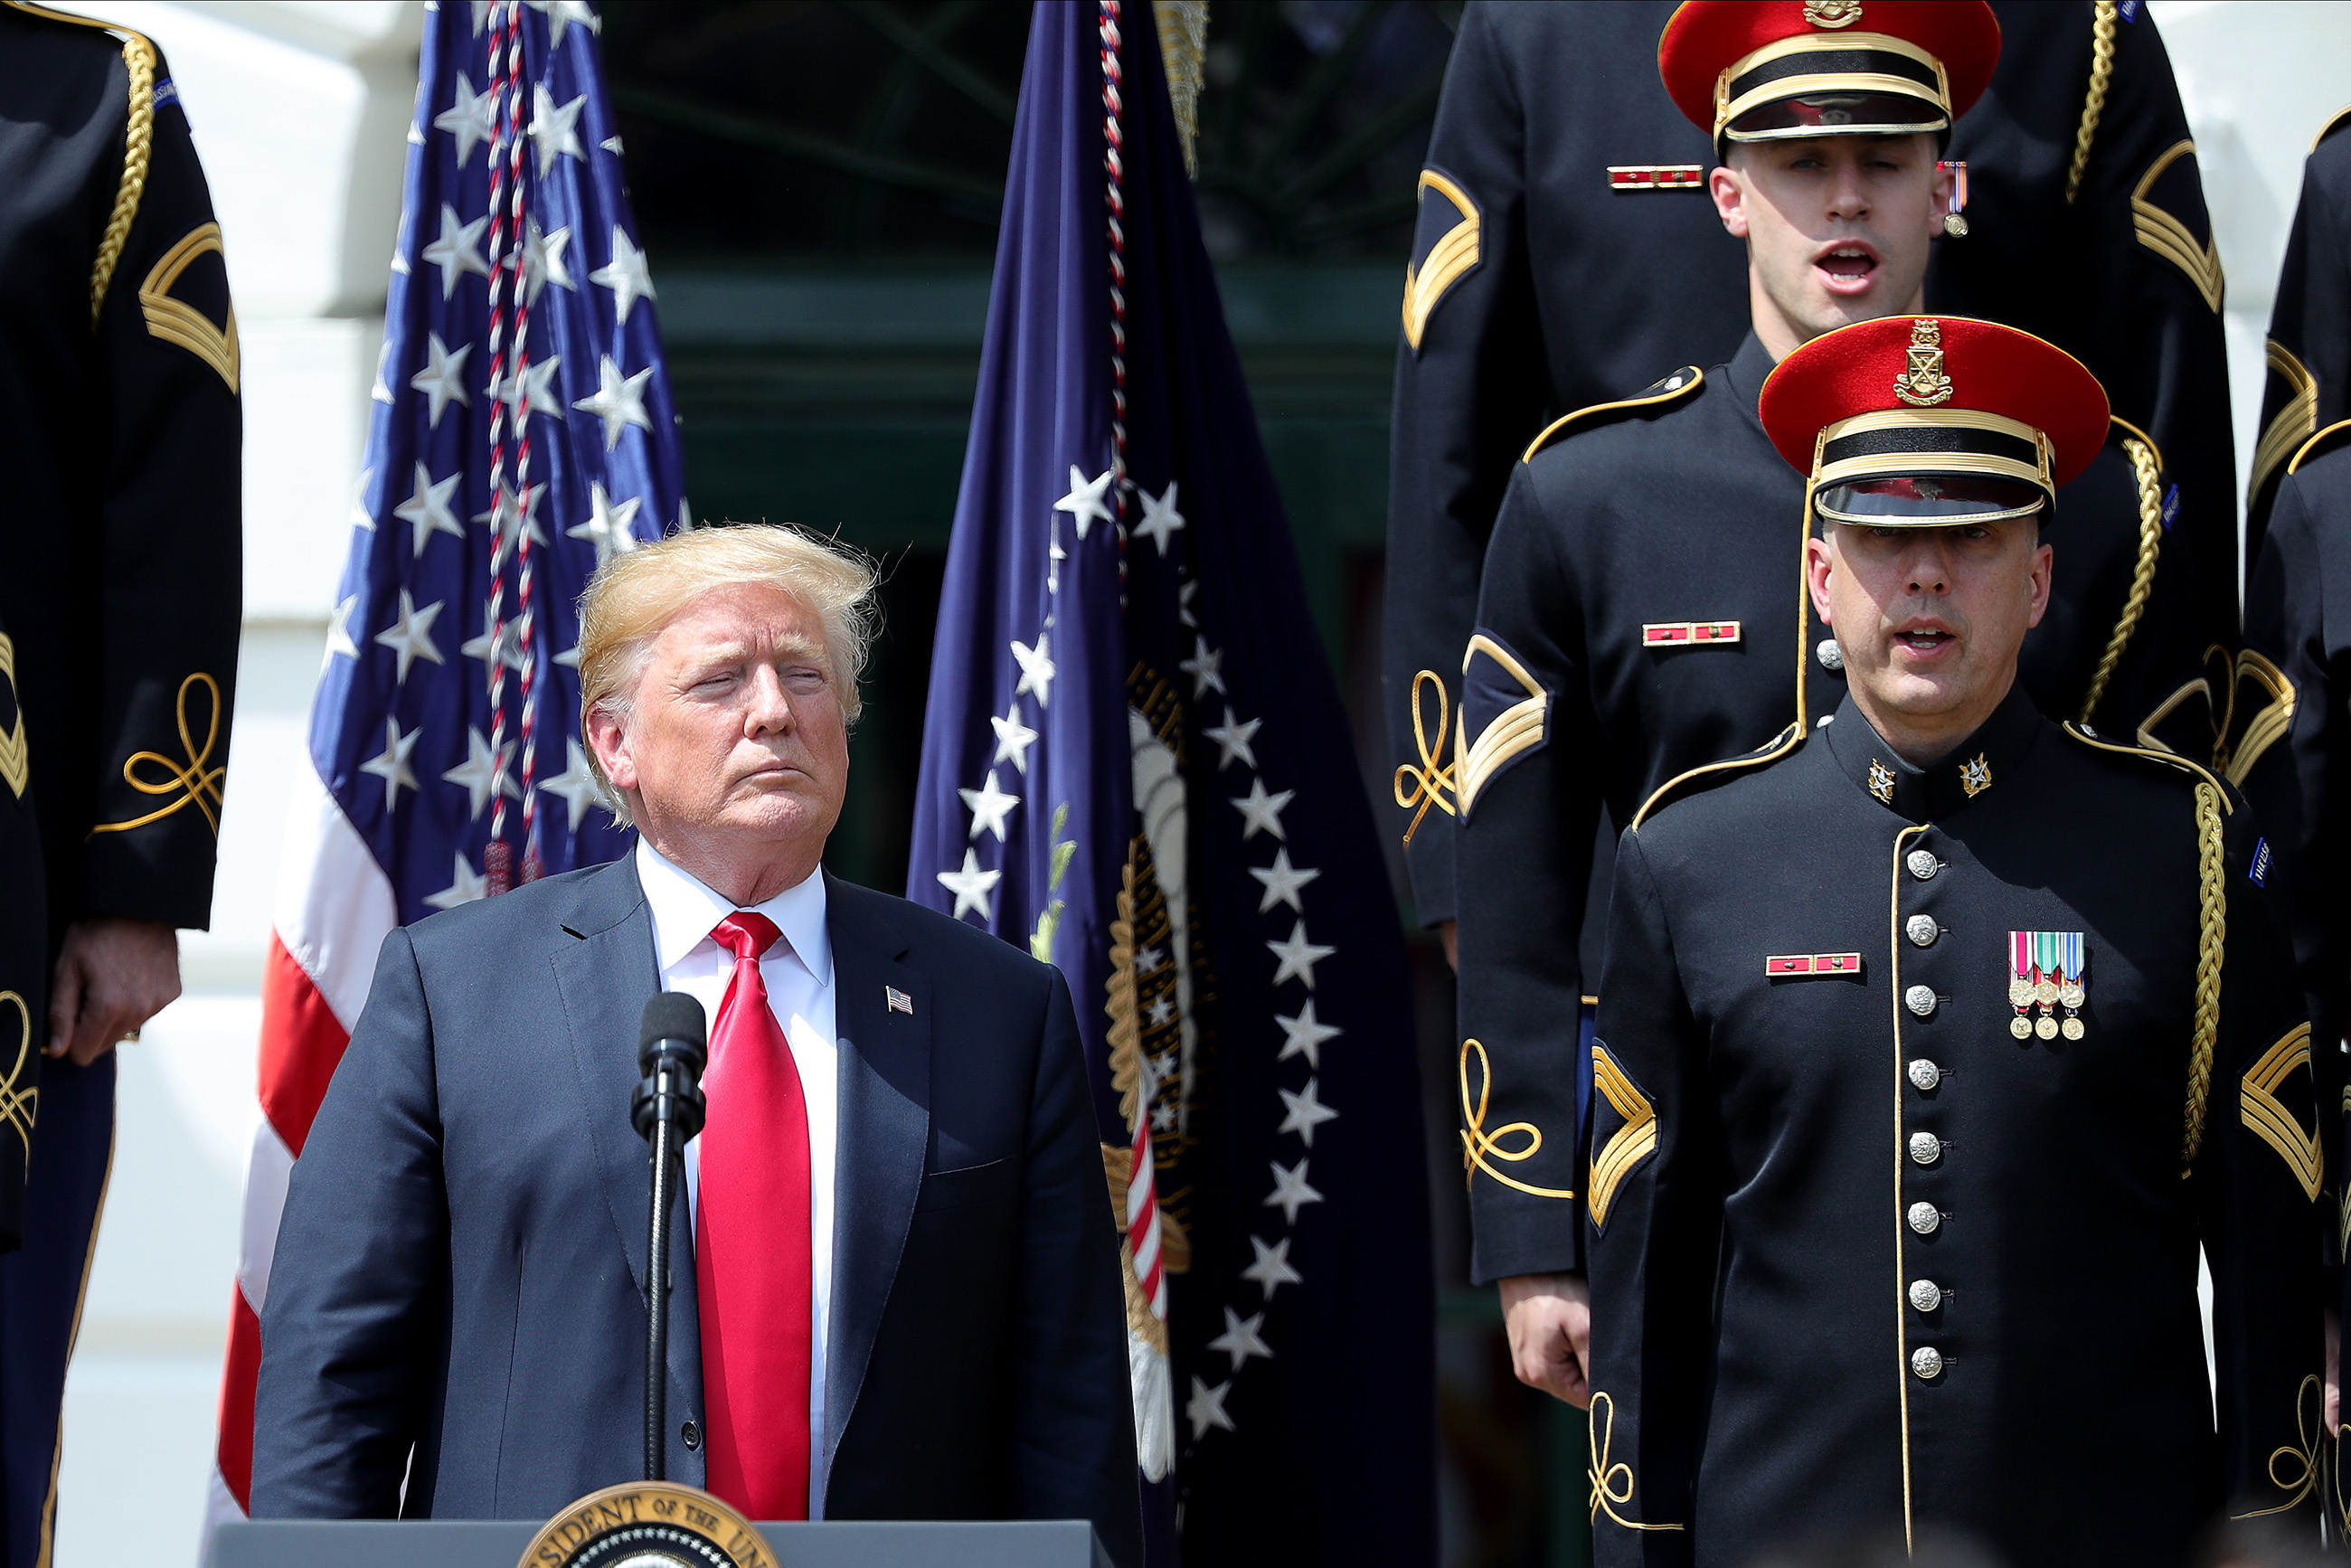 """President Donald Trump listens during the """"Celebration of America"""" event at the White House held in place of the ceremony honoring the Super Bowl champion Eagles."""